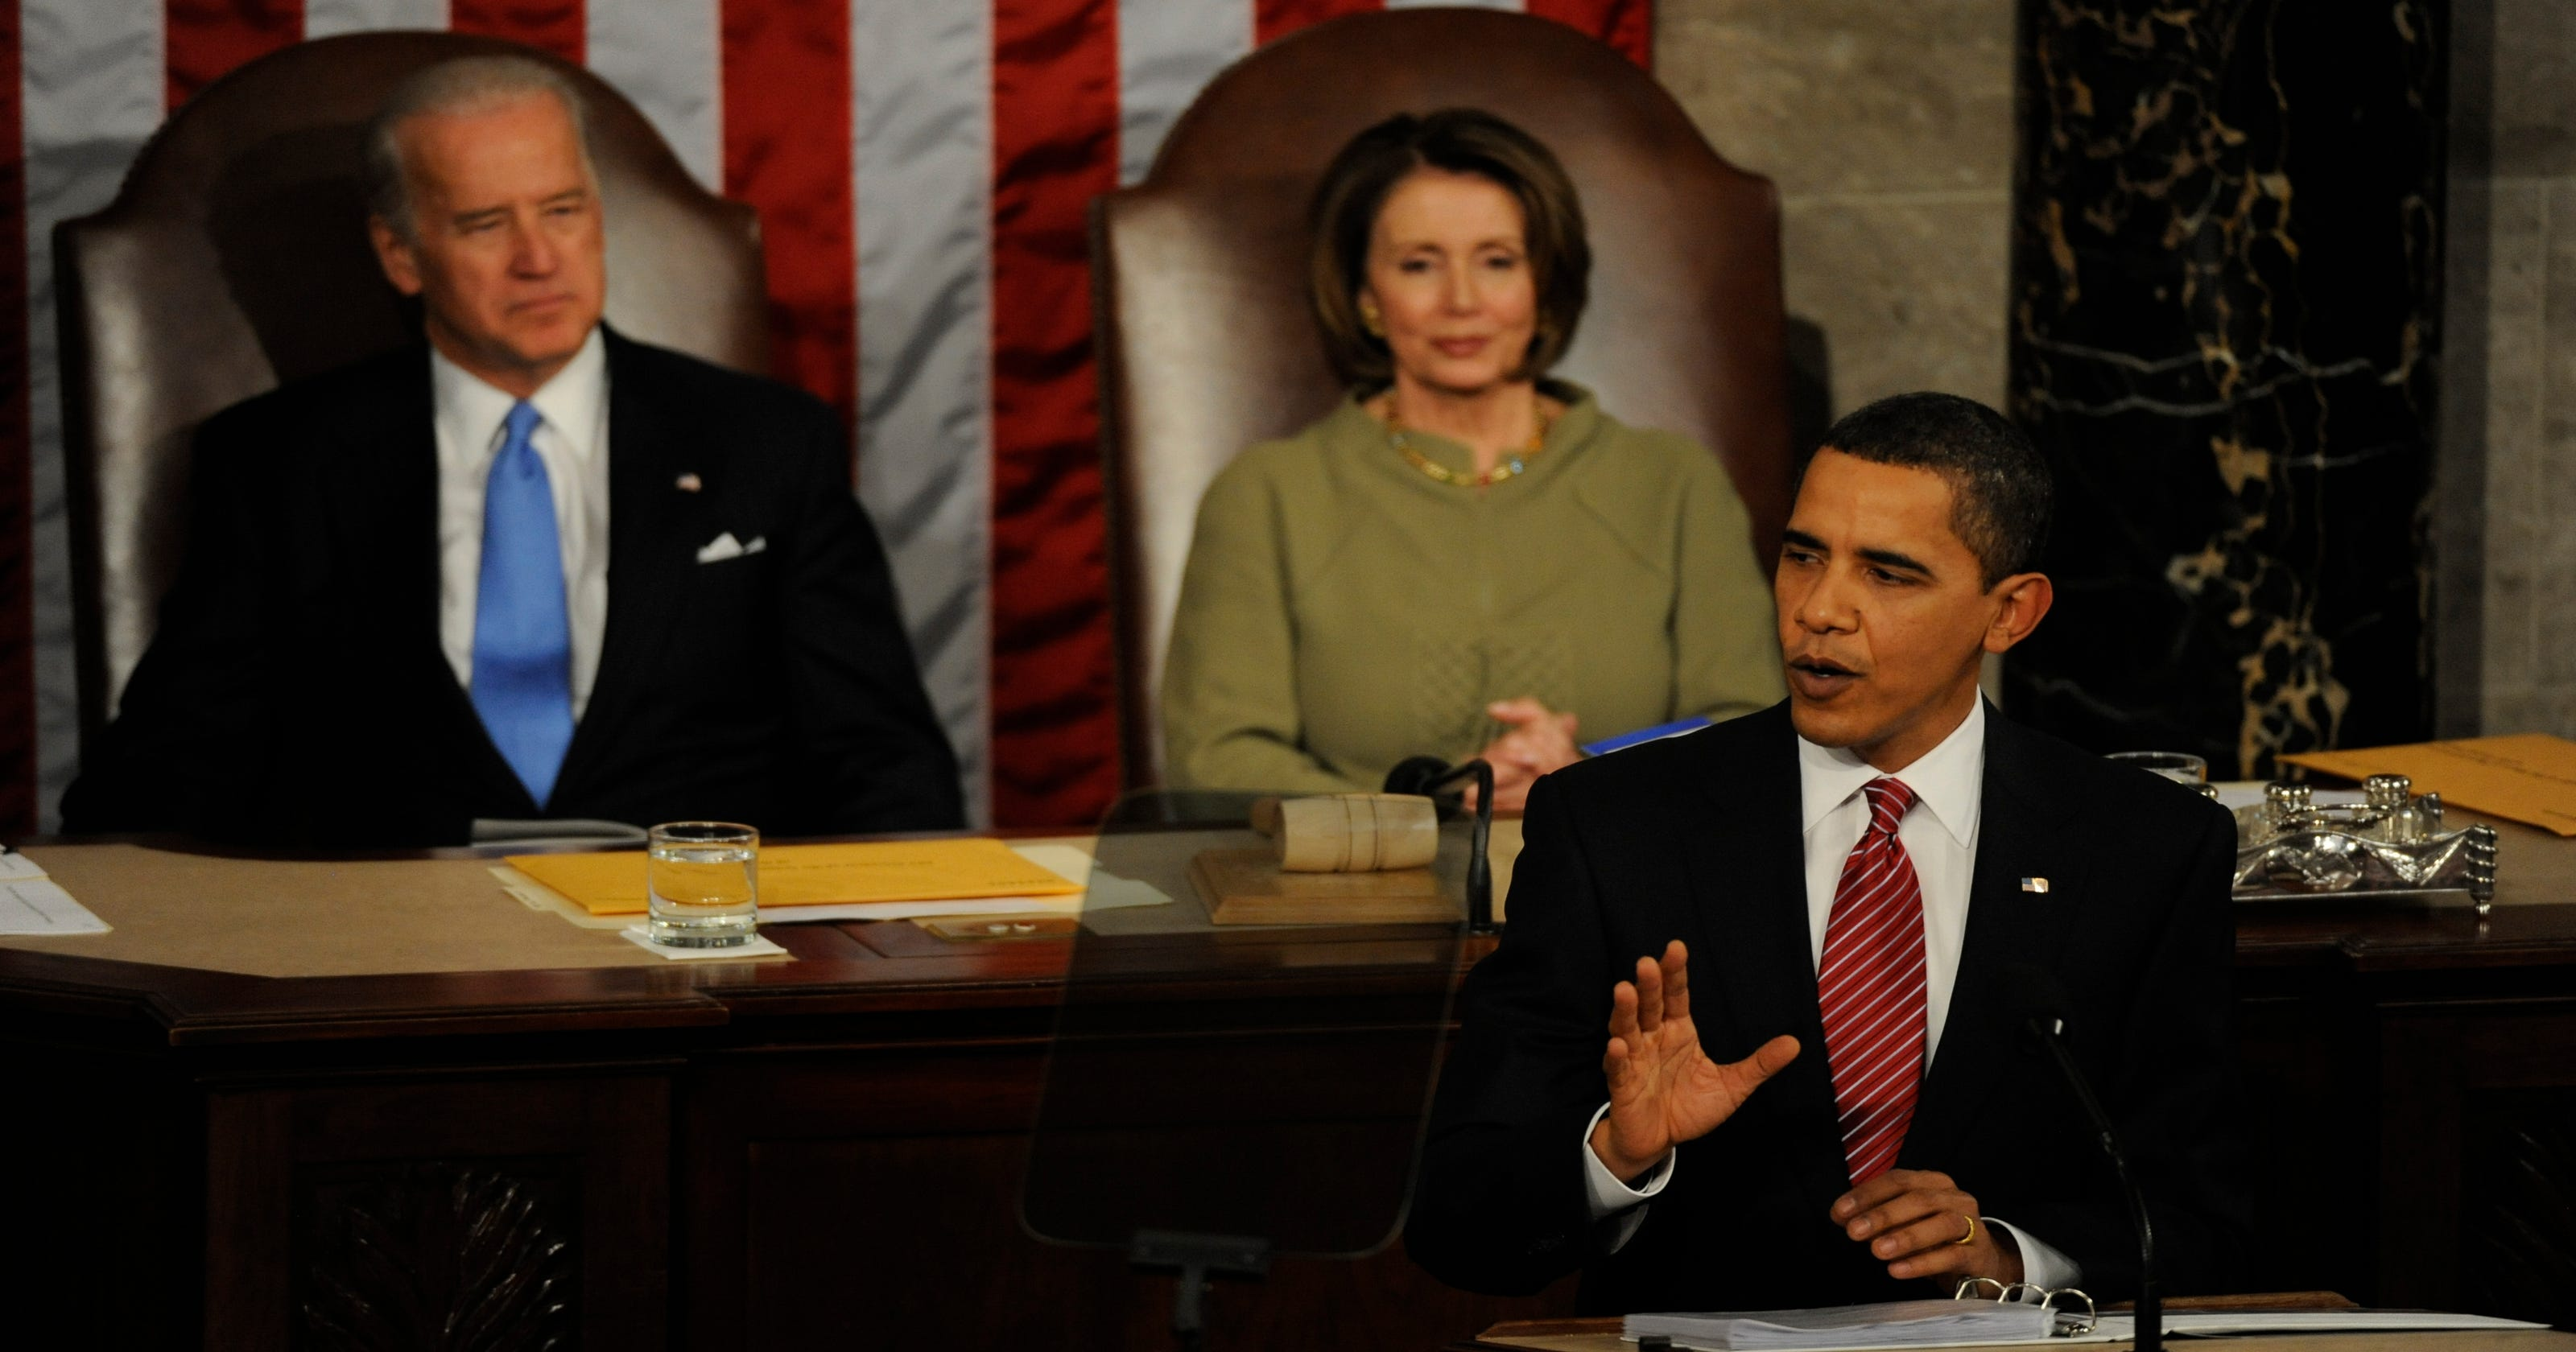 How the last 5 presidents handled their first address to Congress